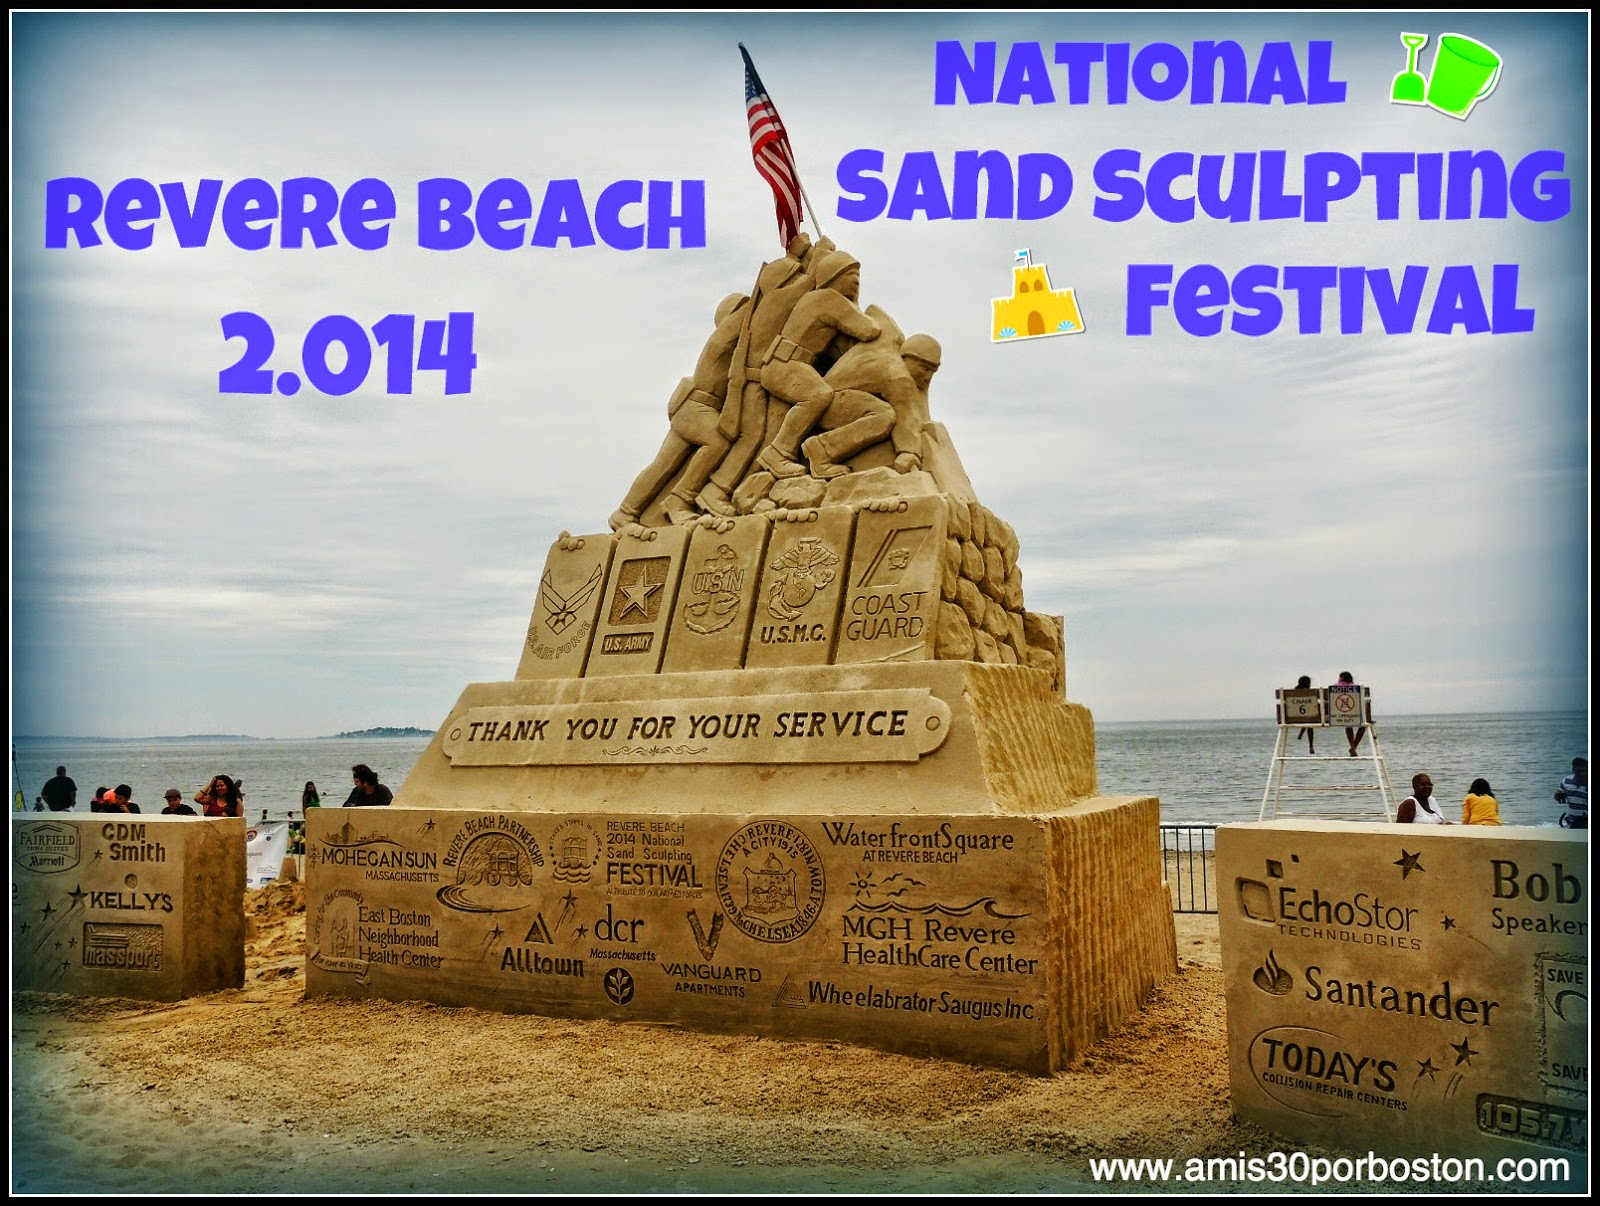 Revere Beach 2014 National Sand Sculpting Festival